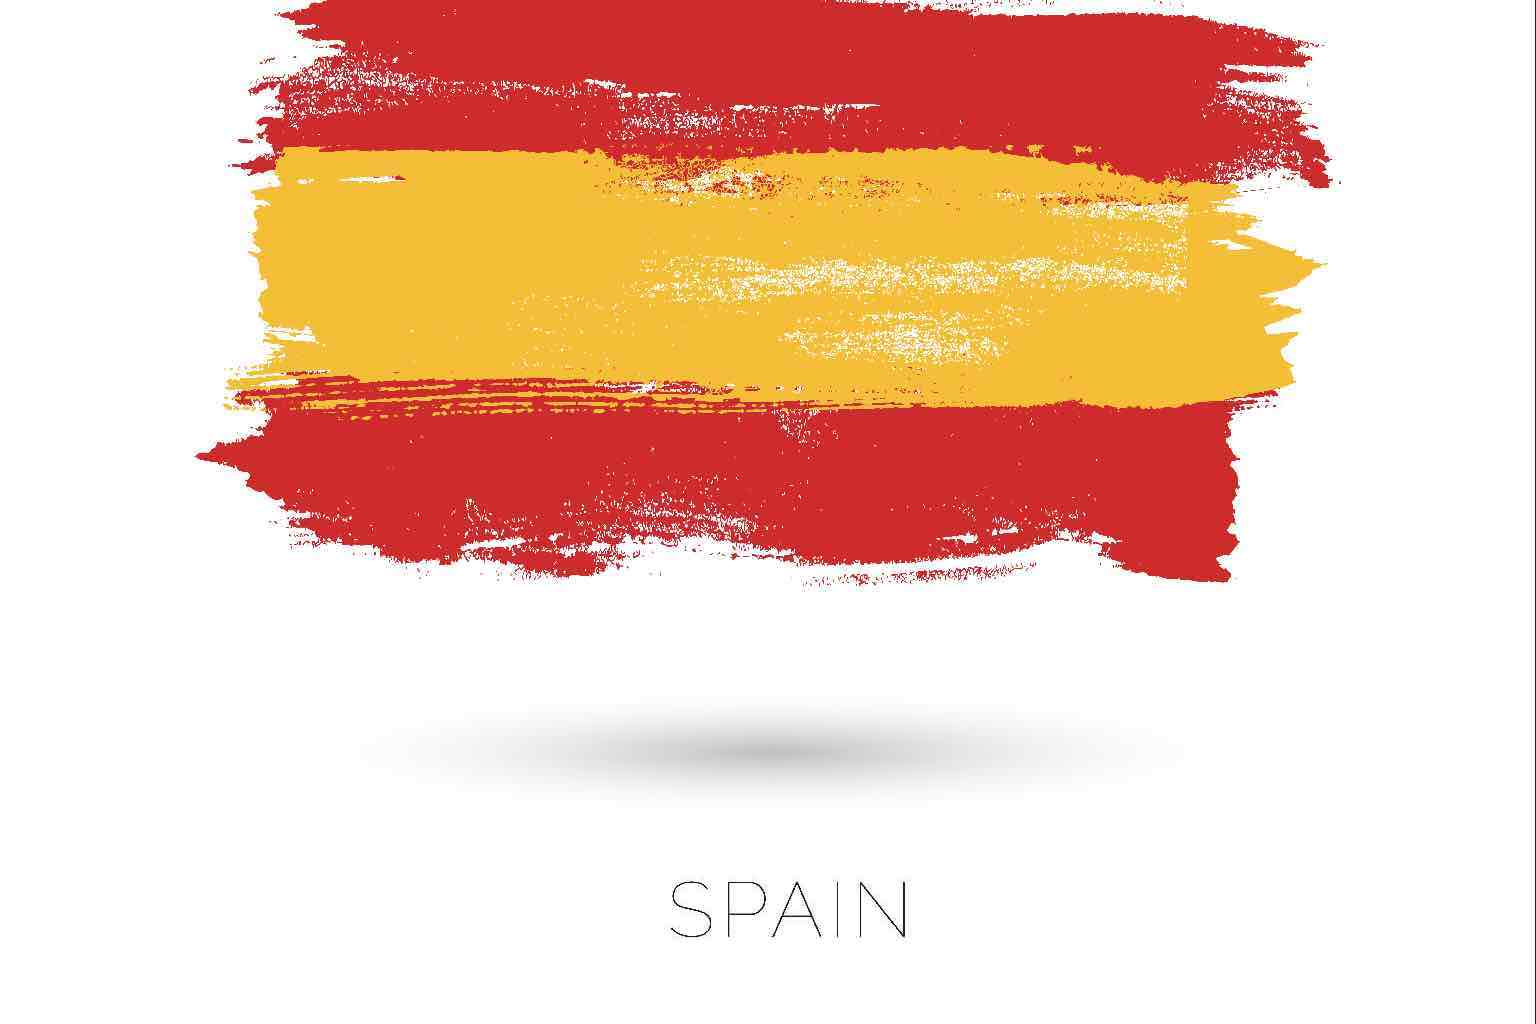 Artistic stressed version of the Spanish flag